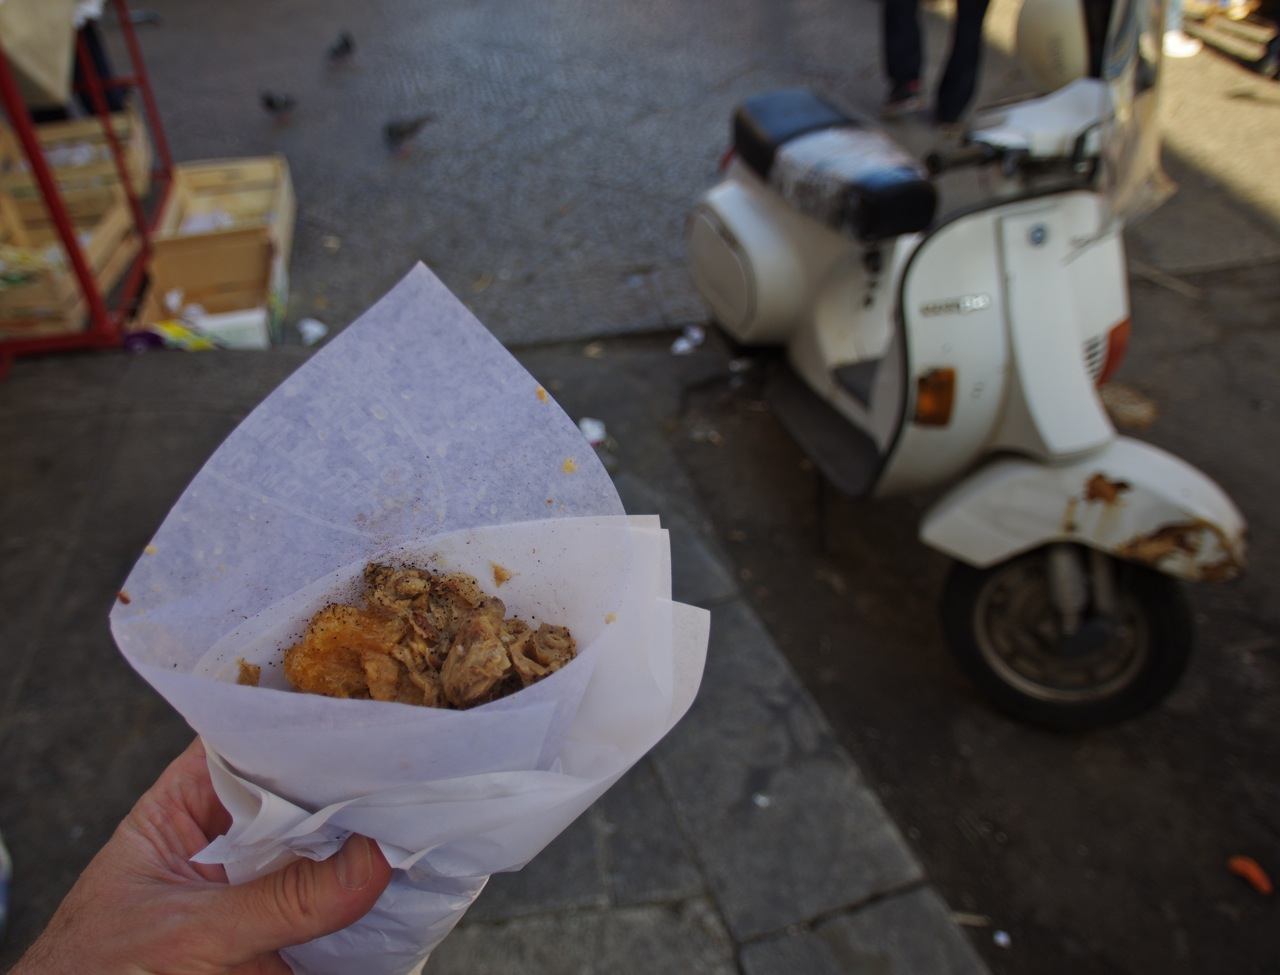 Frittola & Vespa in Ballaro market Palermo by Stephen Woolverton - Own work. Licensed under  Creative Commons Attribution-Share Alike 3.0 via Wikimedia Commons